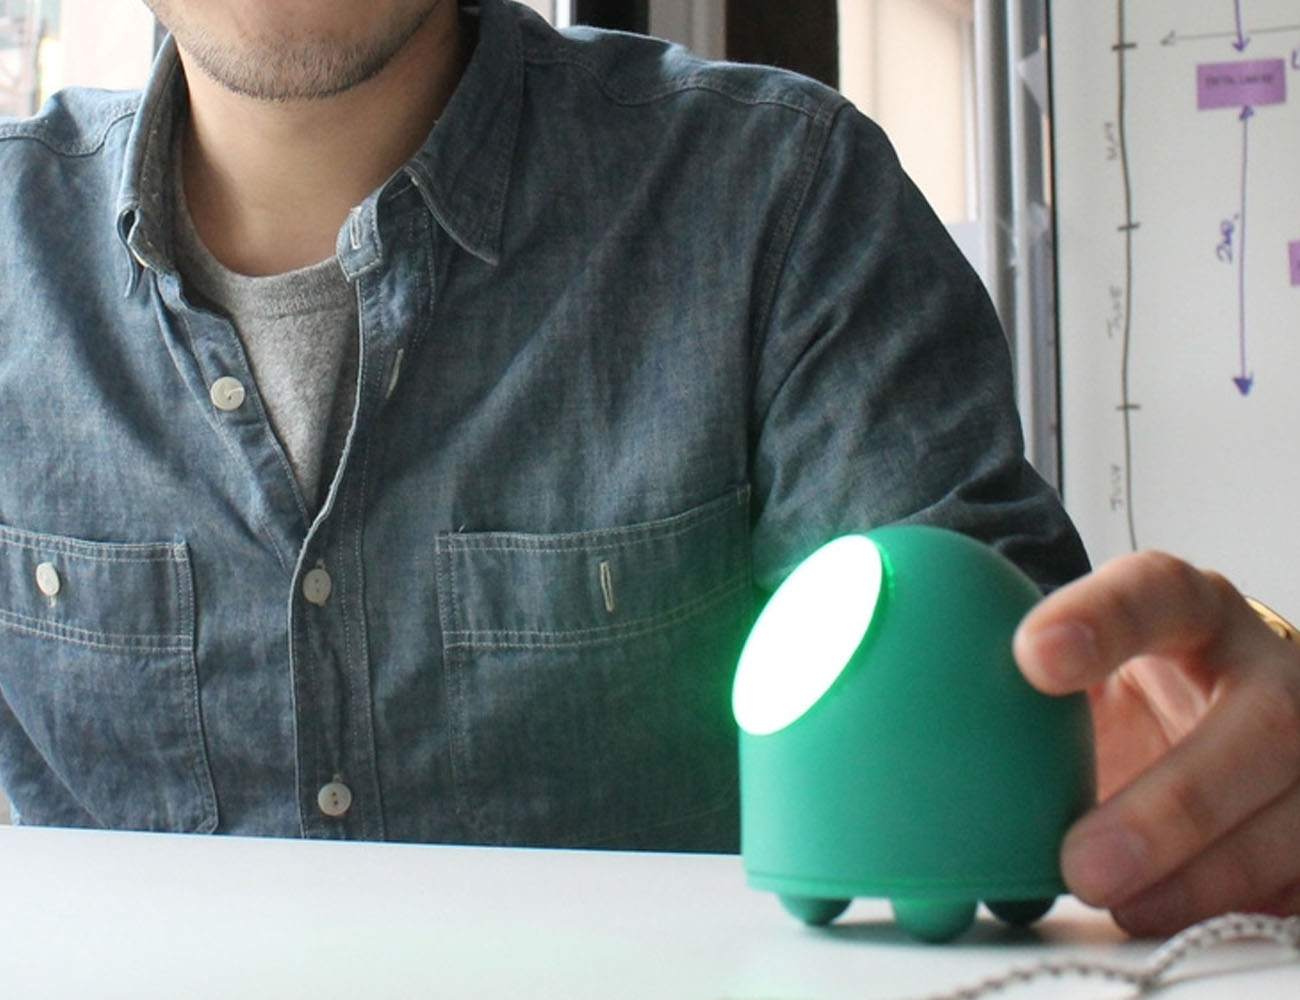 MOTI – The Personal Smart Object for Forming Better Habits